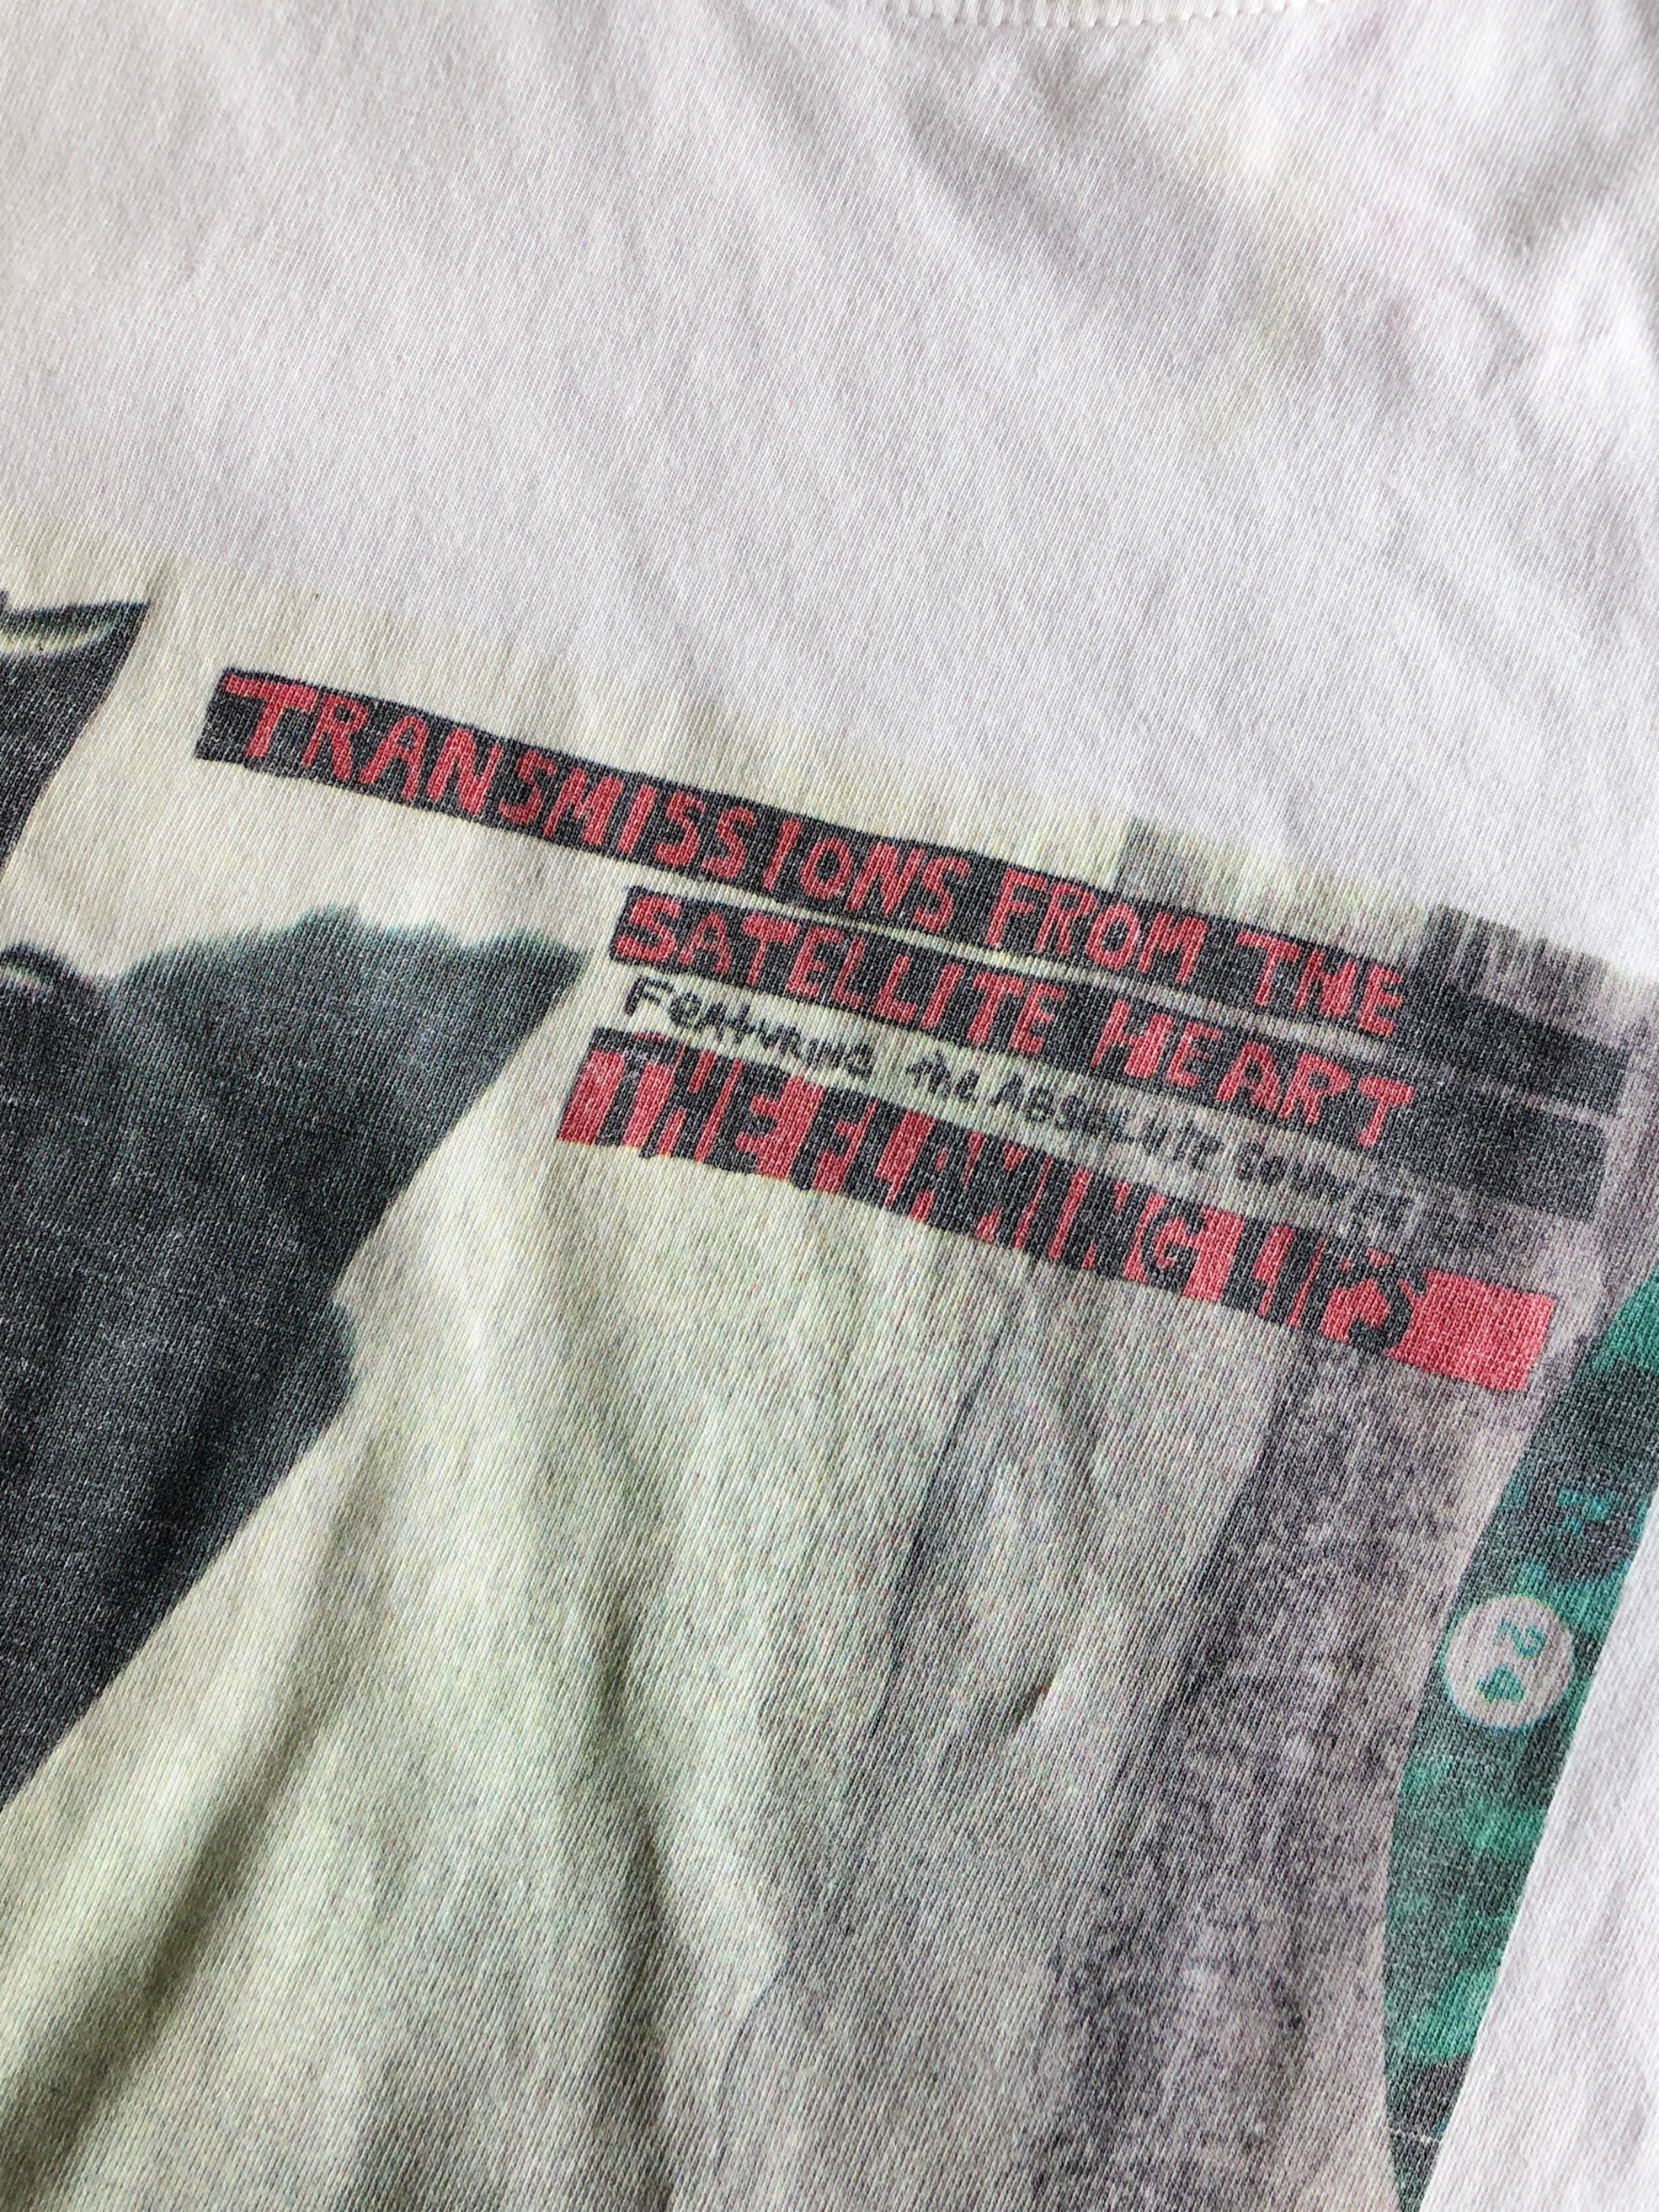 THE FLAMING LIPS/Transmissions From Satellite Heart 1993 T-shirt